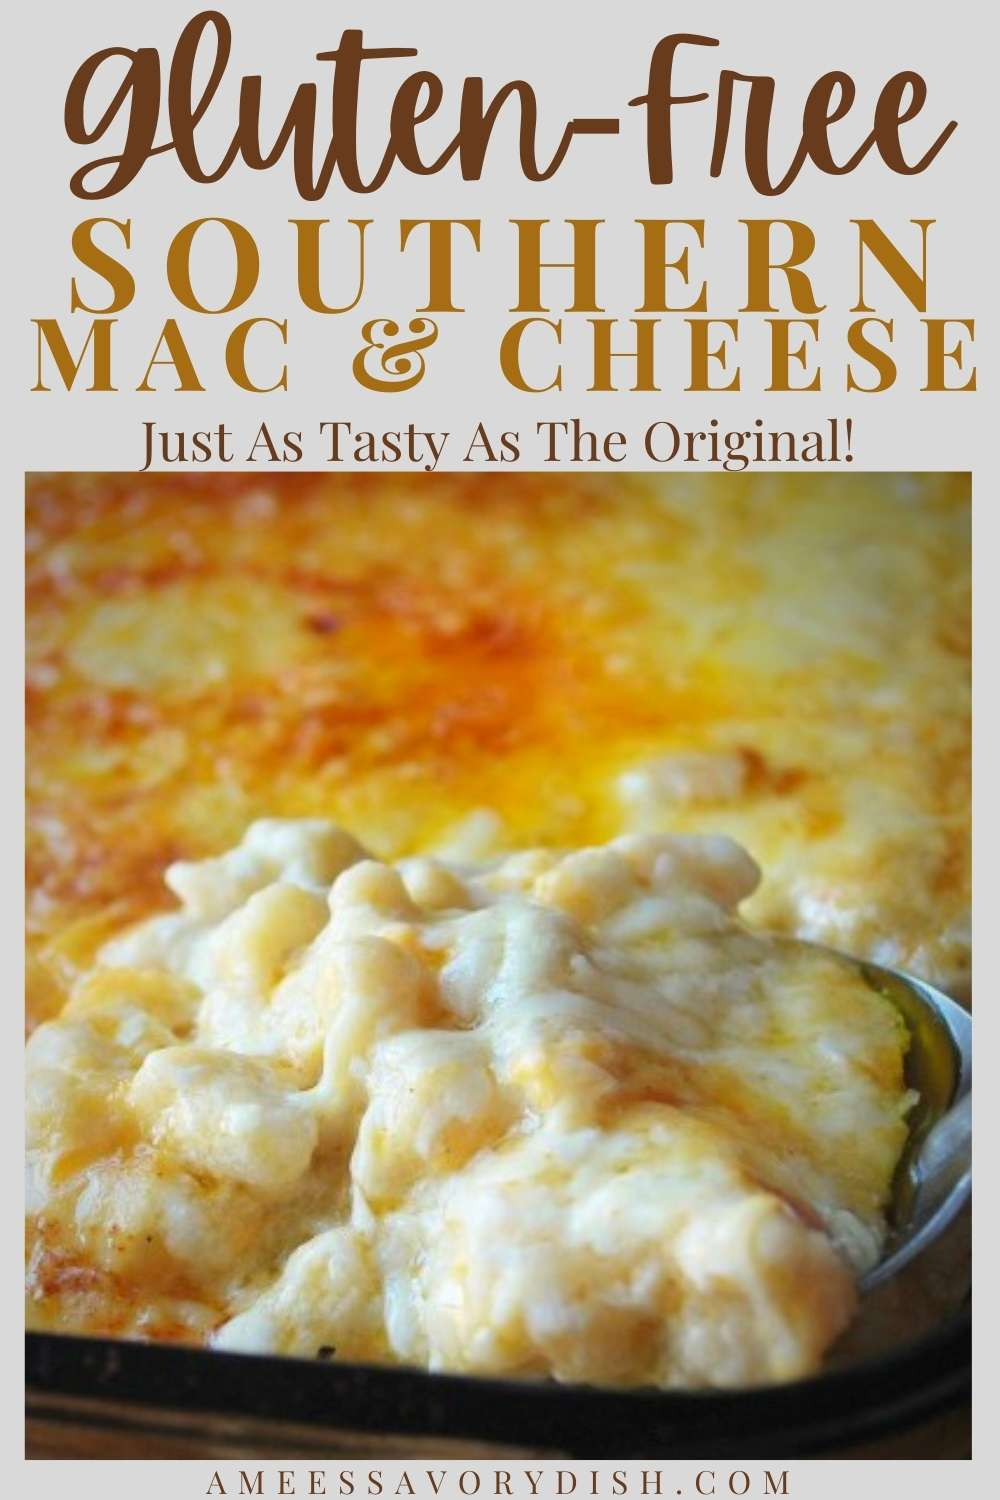 This gluten-free macaroni & cheese bake will satisfy even the pickiest eaters and just as creamy and delicious as the original! #macandcheese #glutenfreesidedish #glutenfreemacandcheese #macaroniandcheese #southernrecipes via @Ameessavorydish